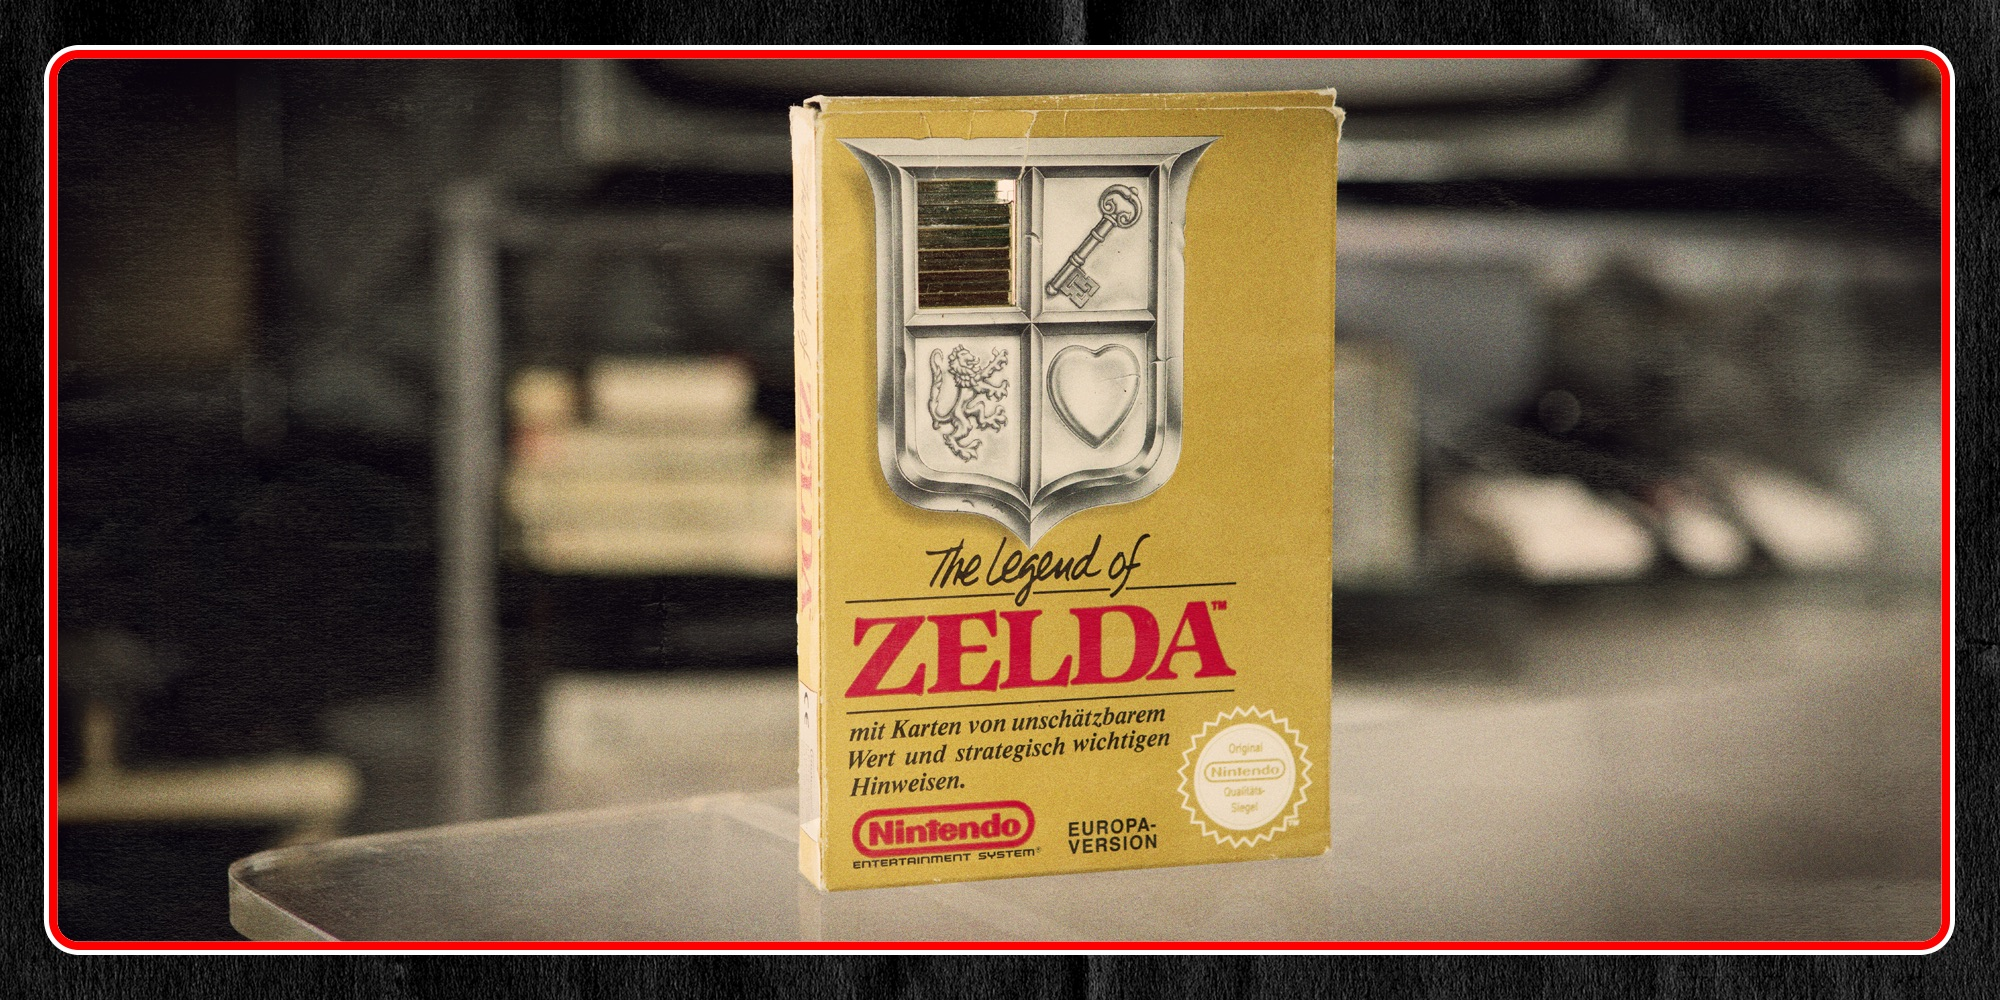 Speciaal interview over de Nintendo Classic Mini: NES – Deel 4: The Legend of Zelda